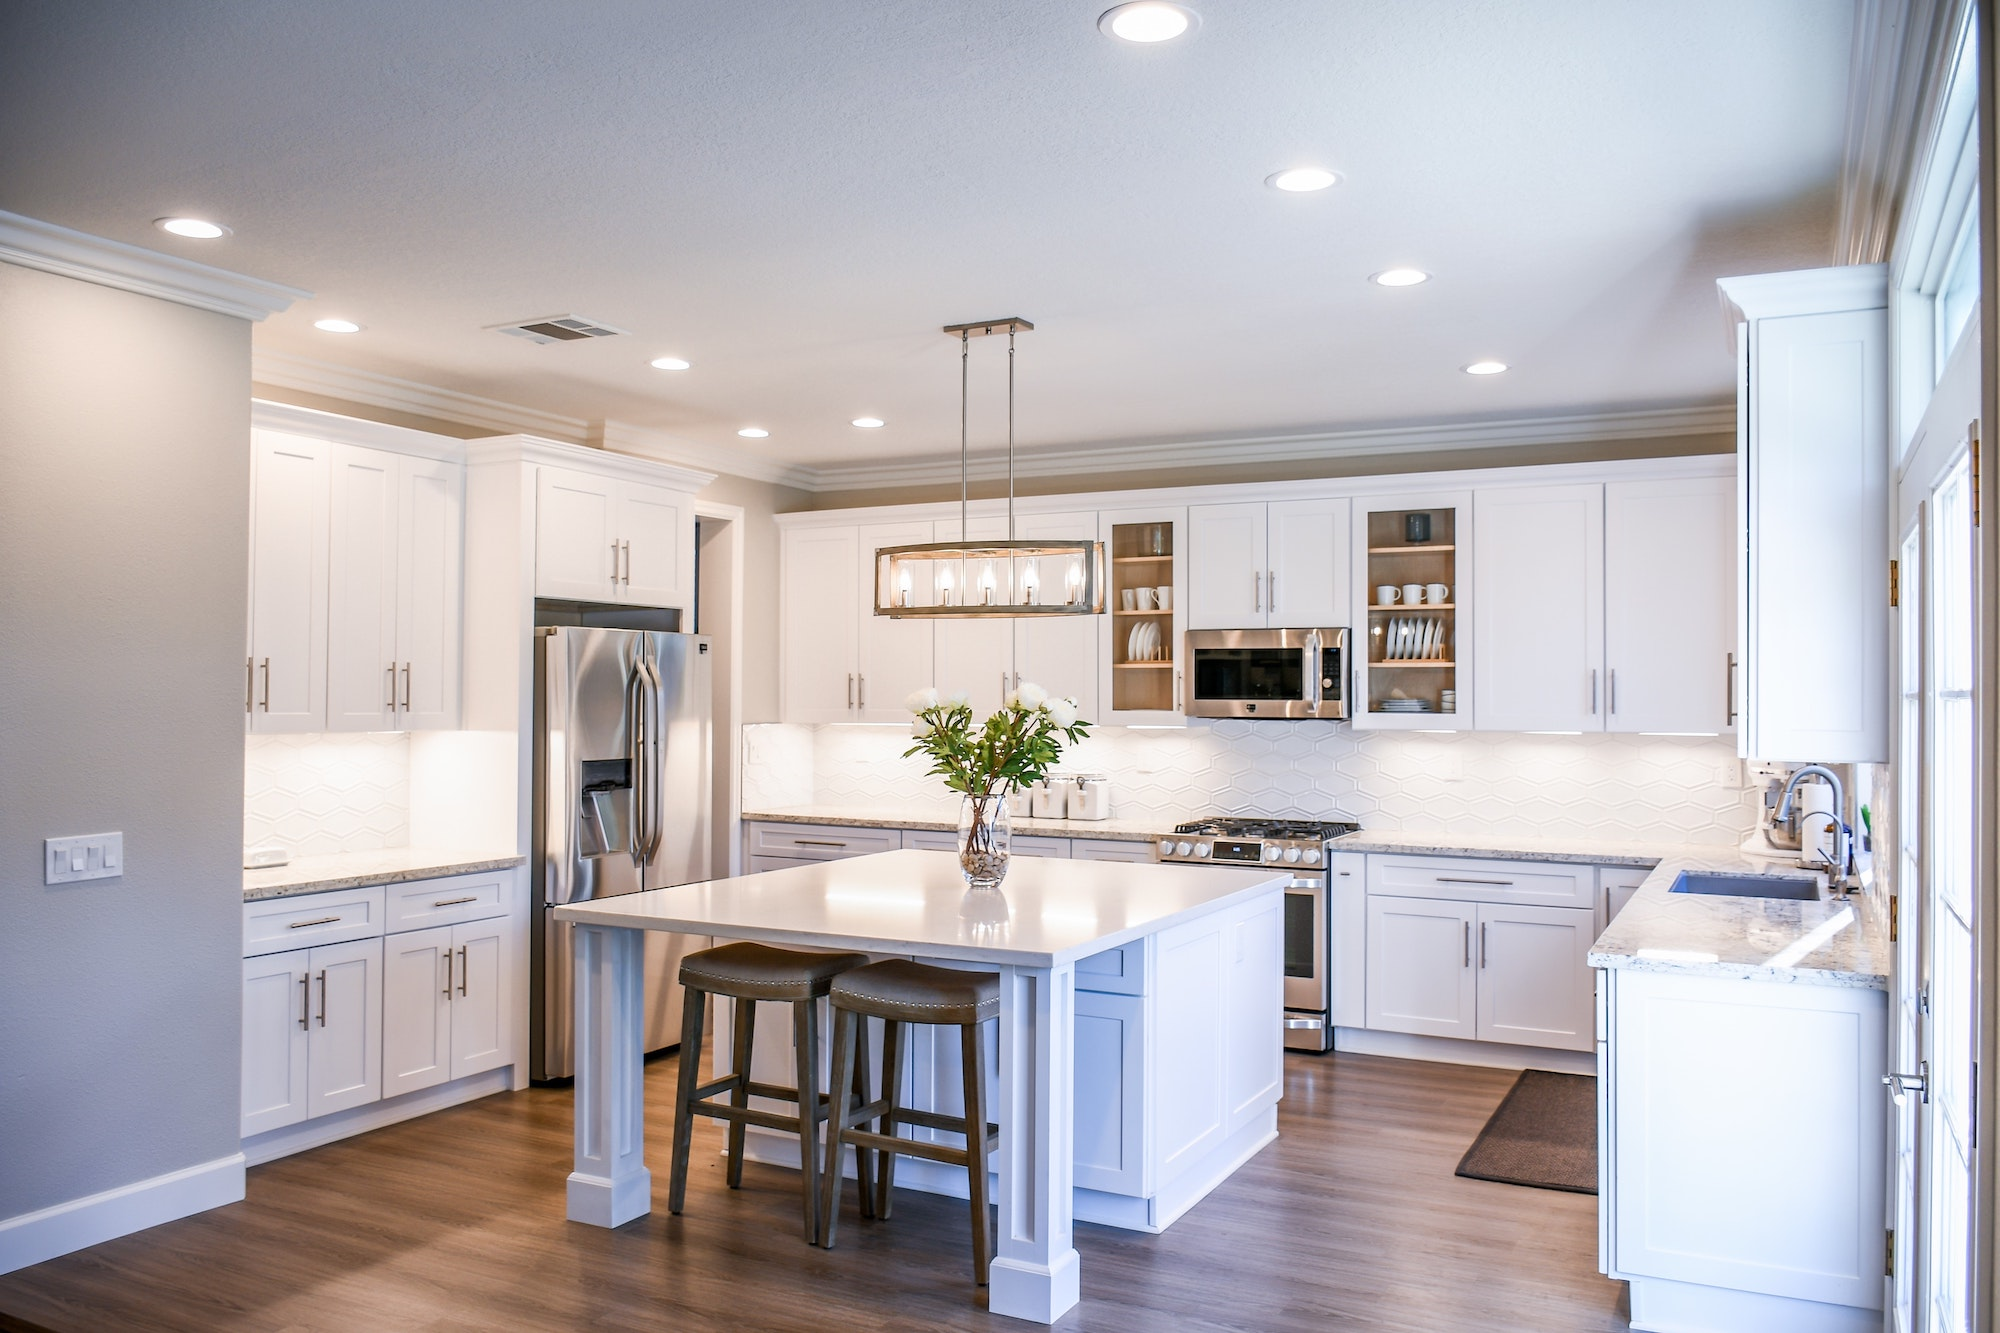 9 Ideas for Kitchen Lighting in Your Home | Home Interiors and Decor | Elle Blonde Luxury Lifestyle Destination Blog